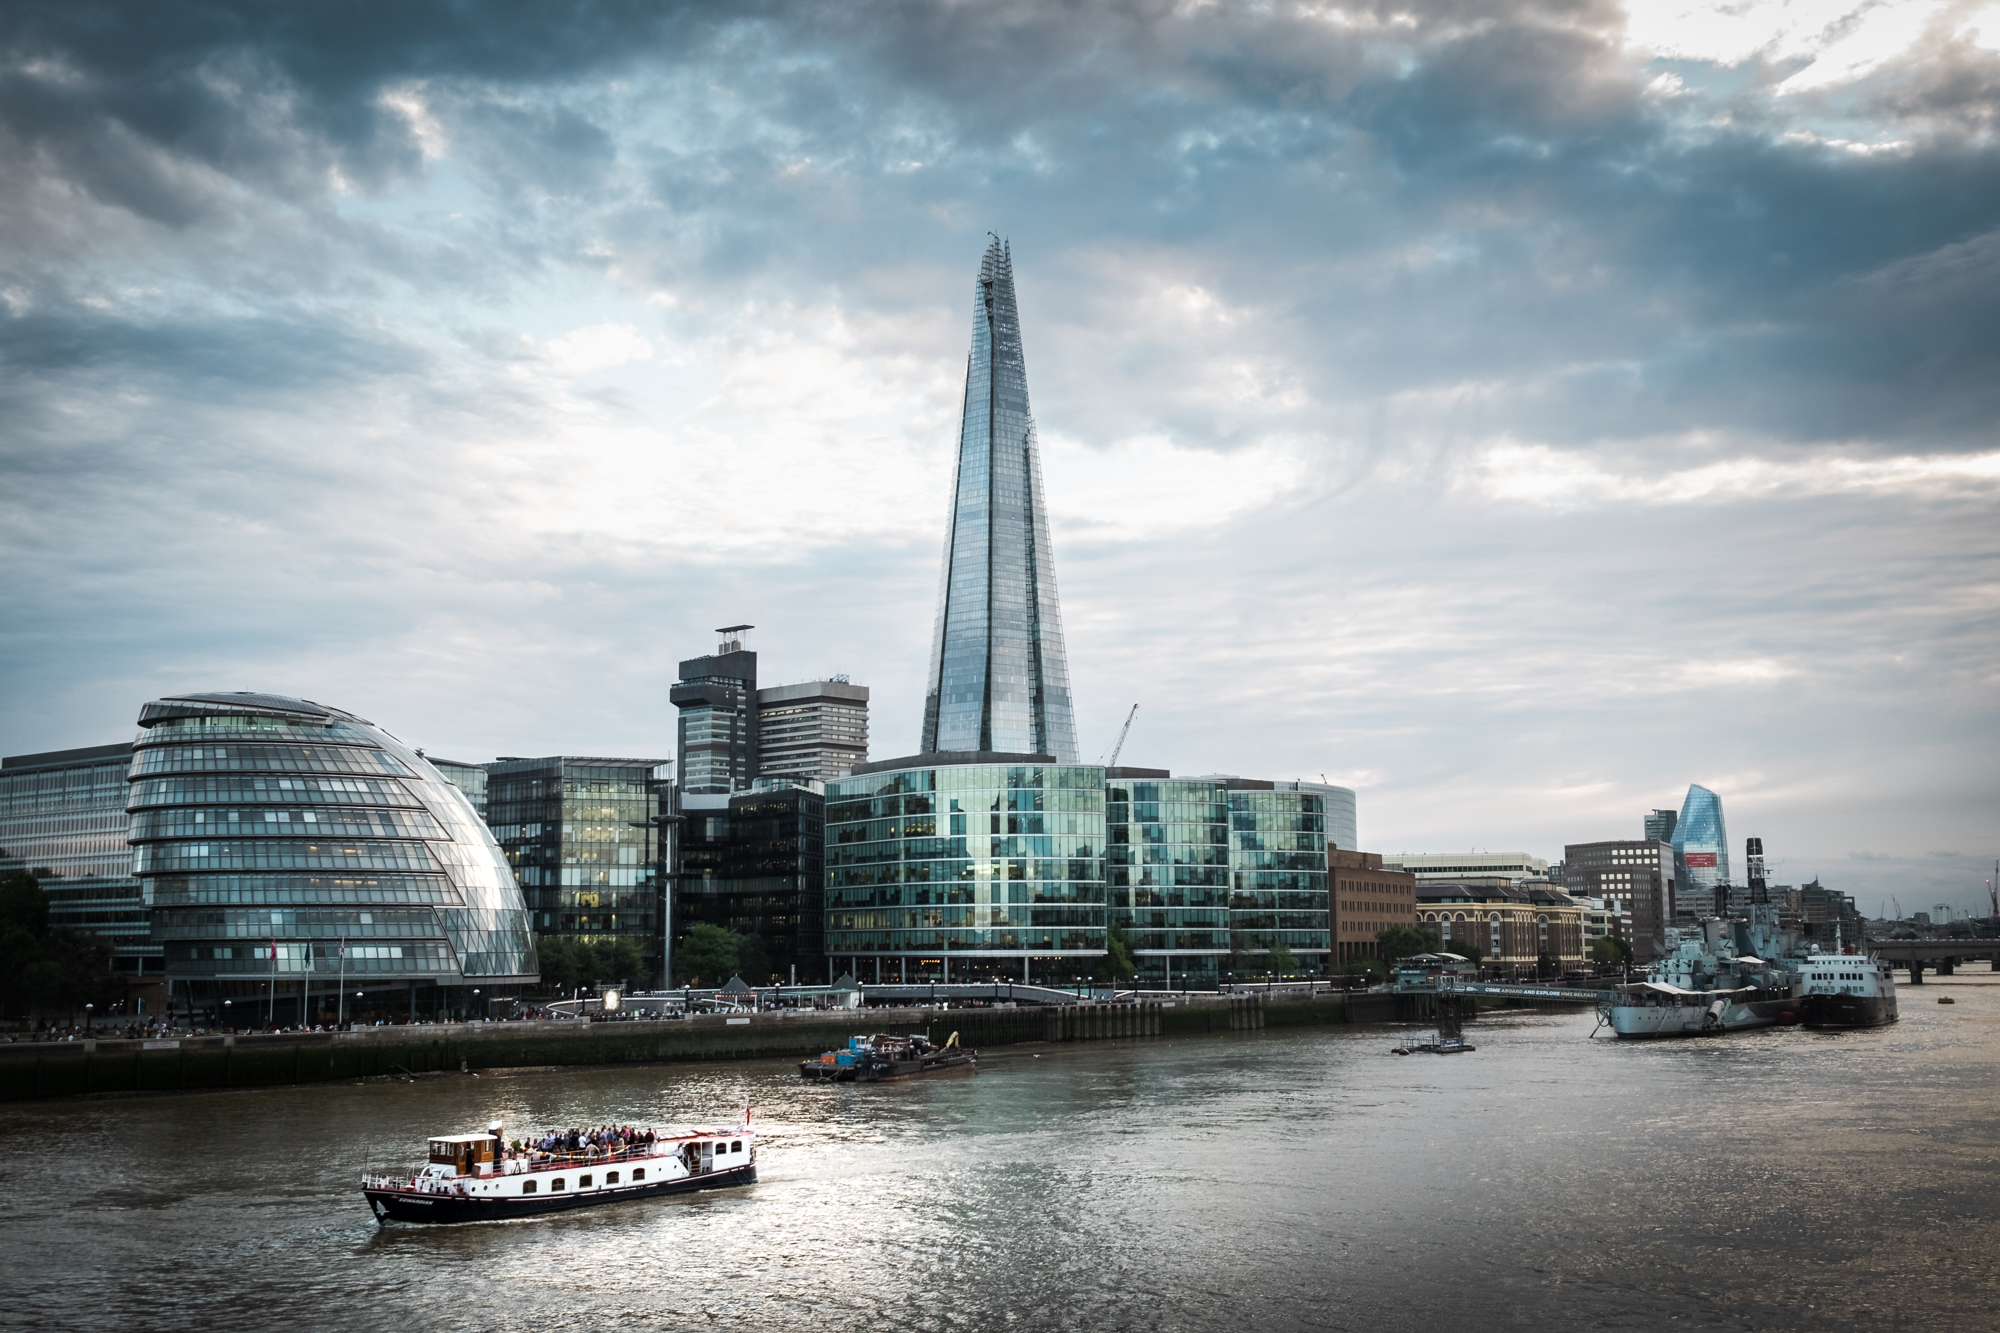 Photo of The Shard in London by Trevor Sherwin